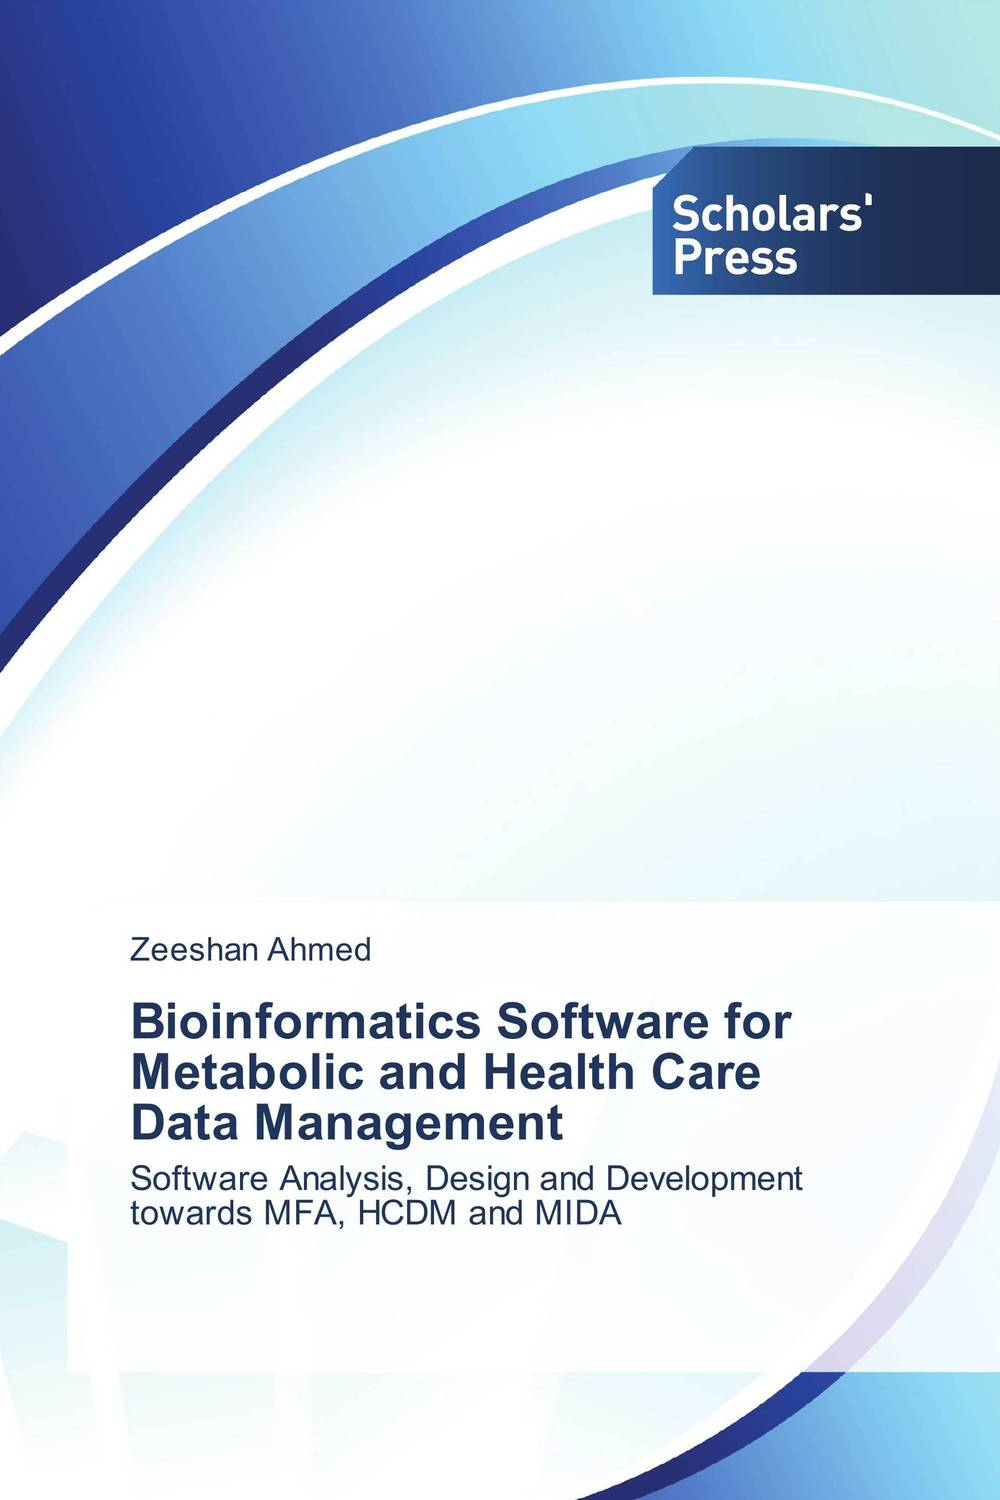 Bioinformatics Software for Metabolic and Health Care Data Management